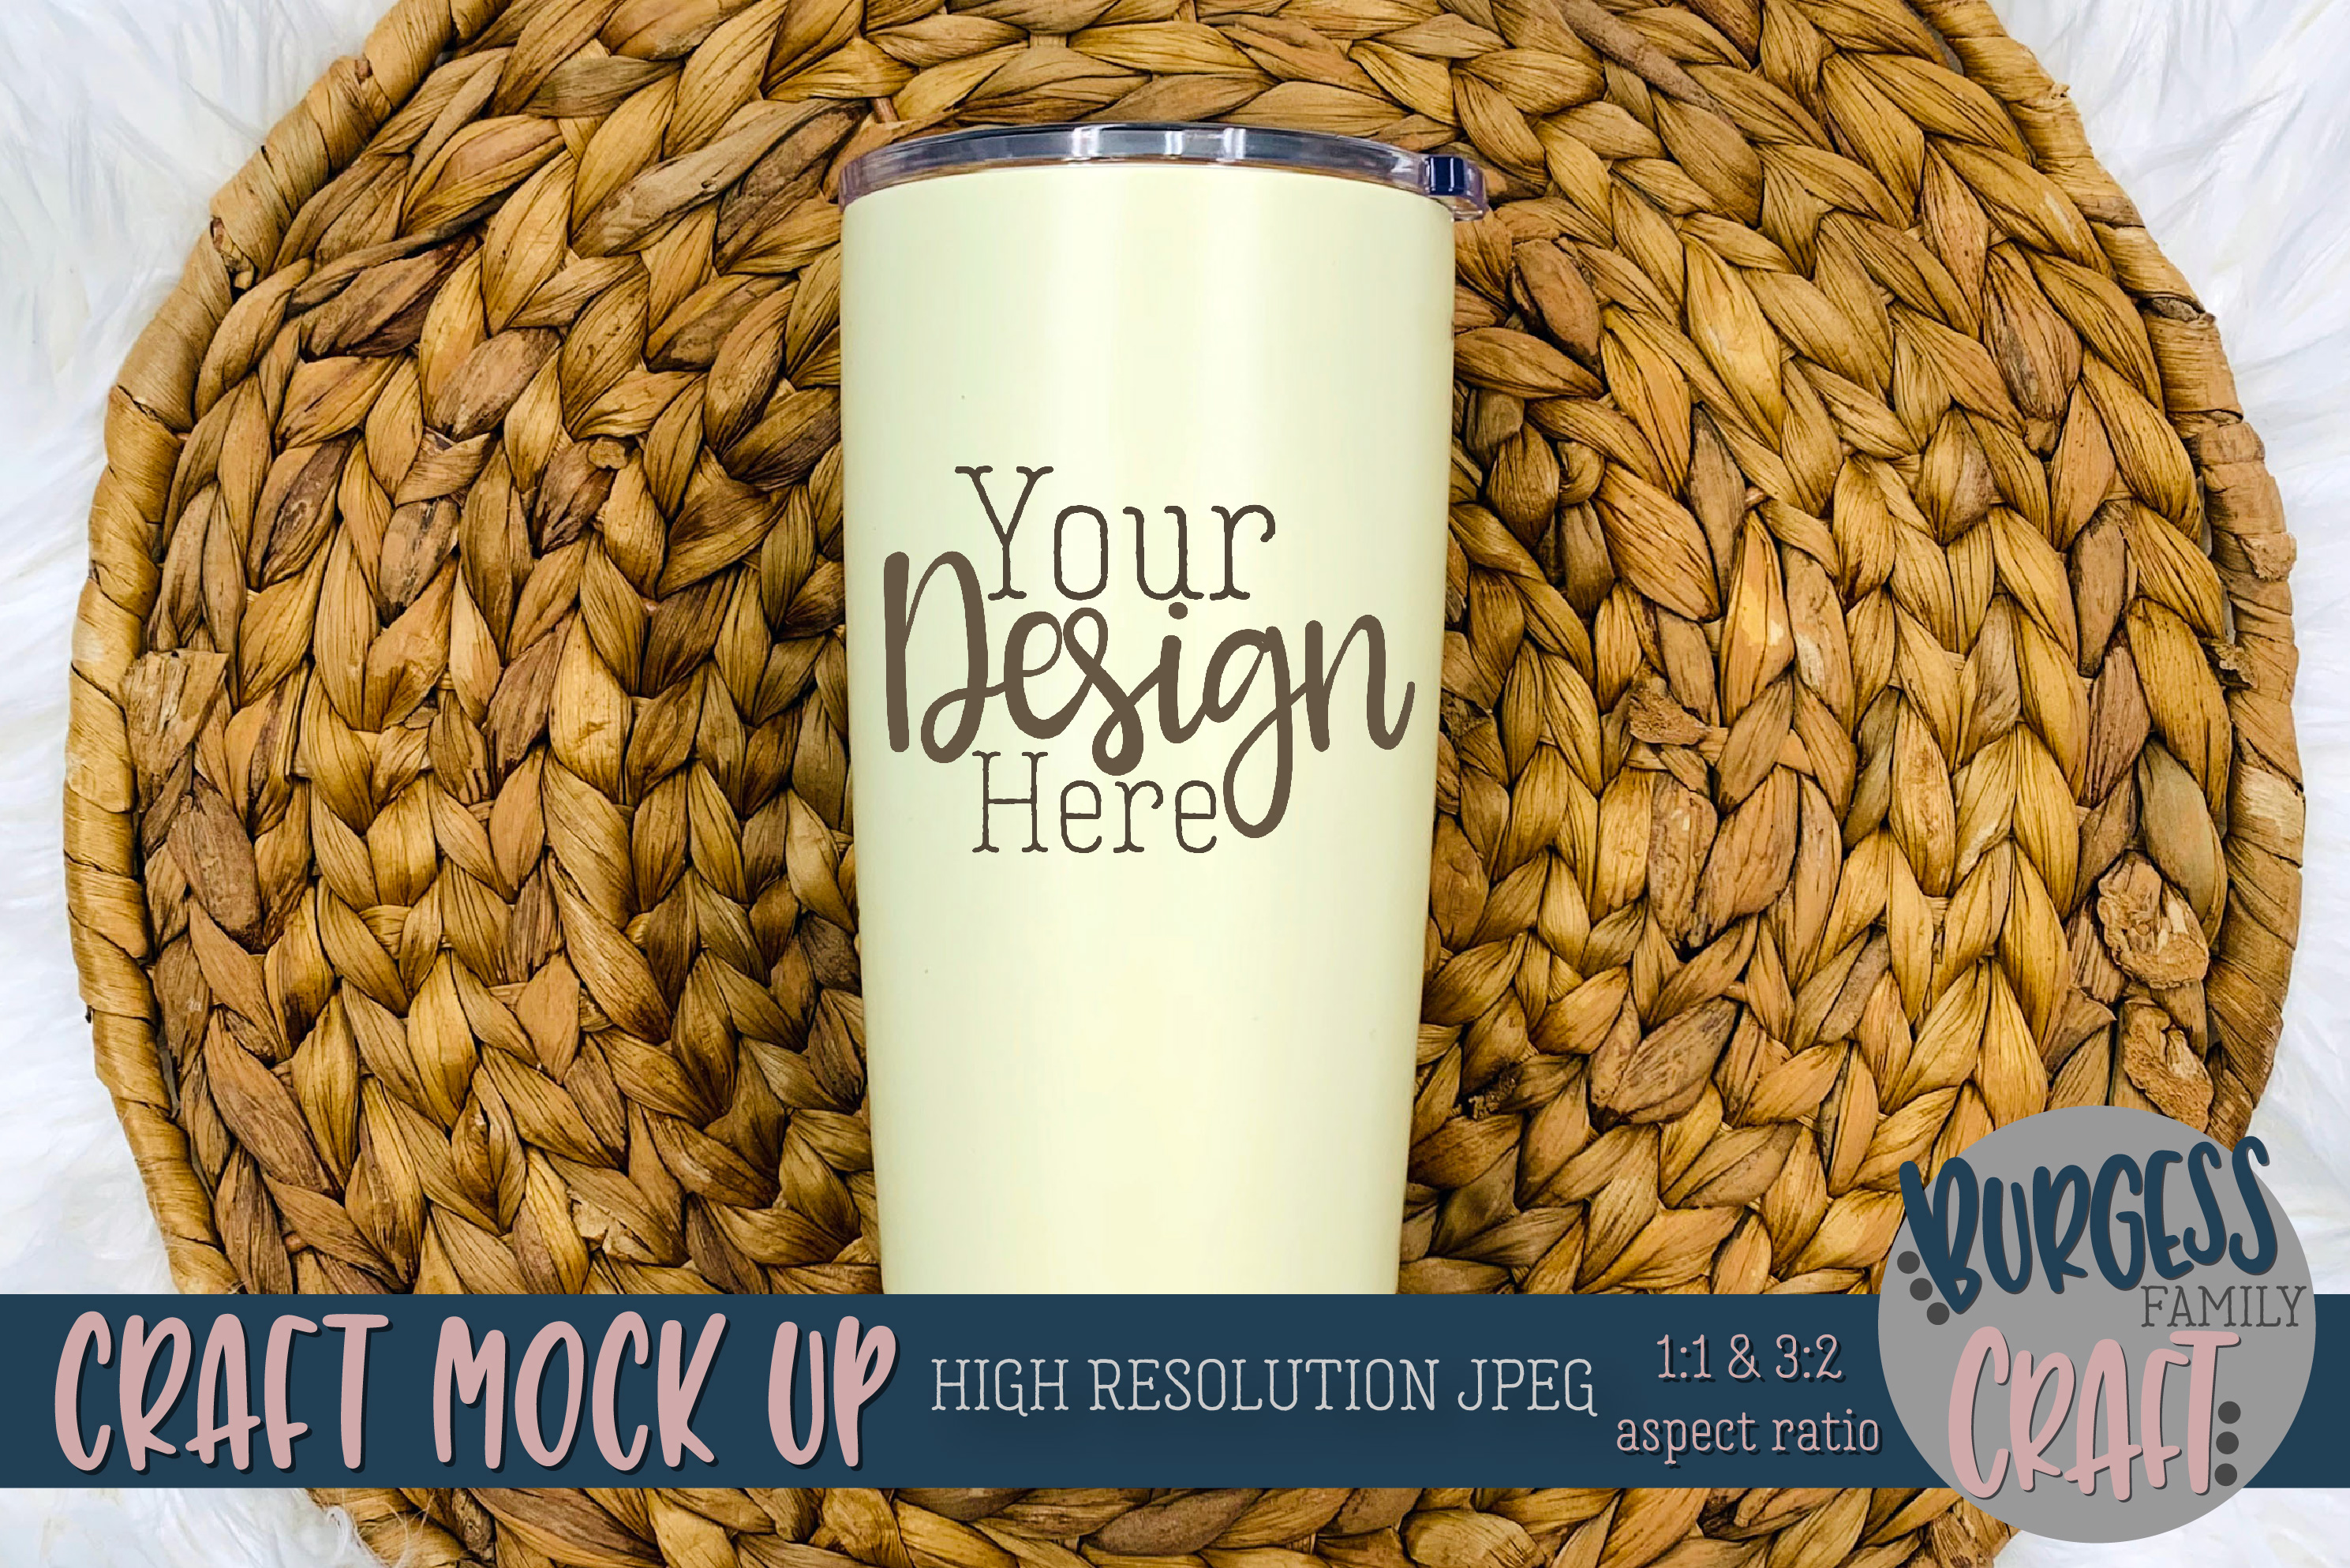 Stainless steel tumbler Craft mock up |High Resolution JPEG example image 3